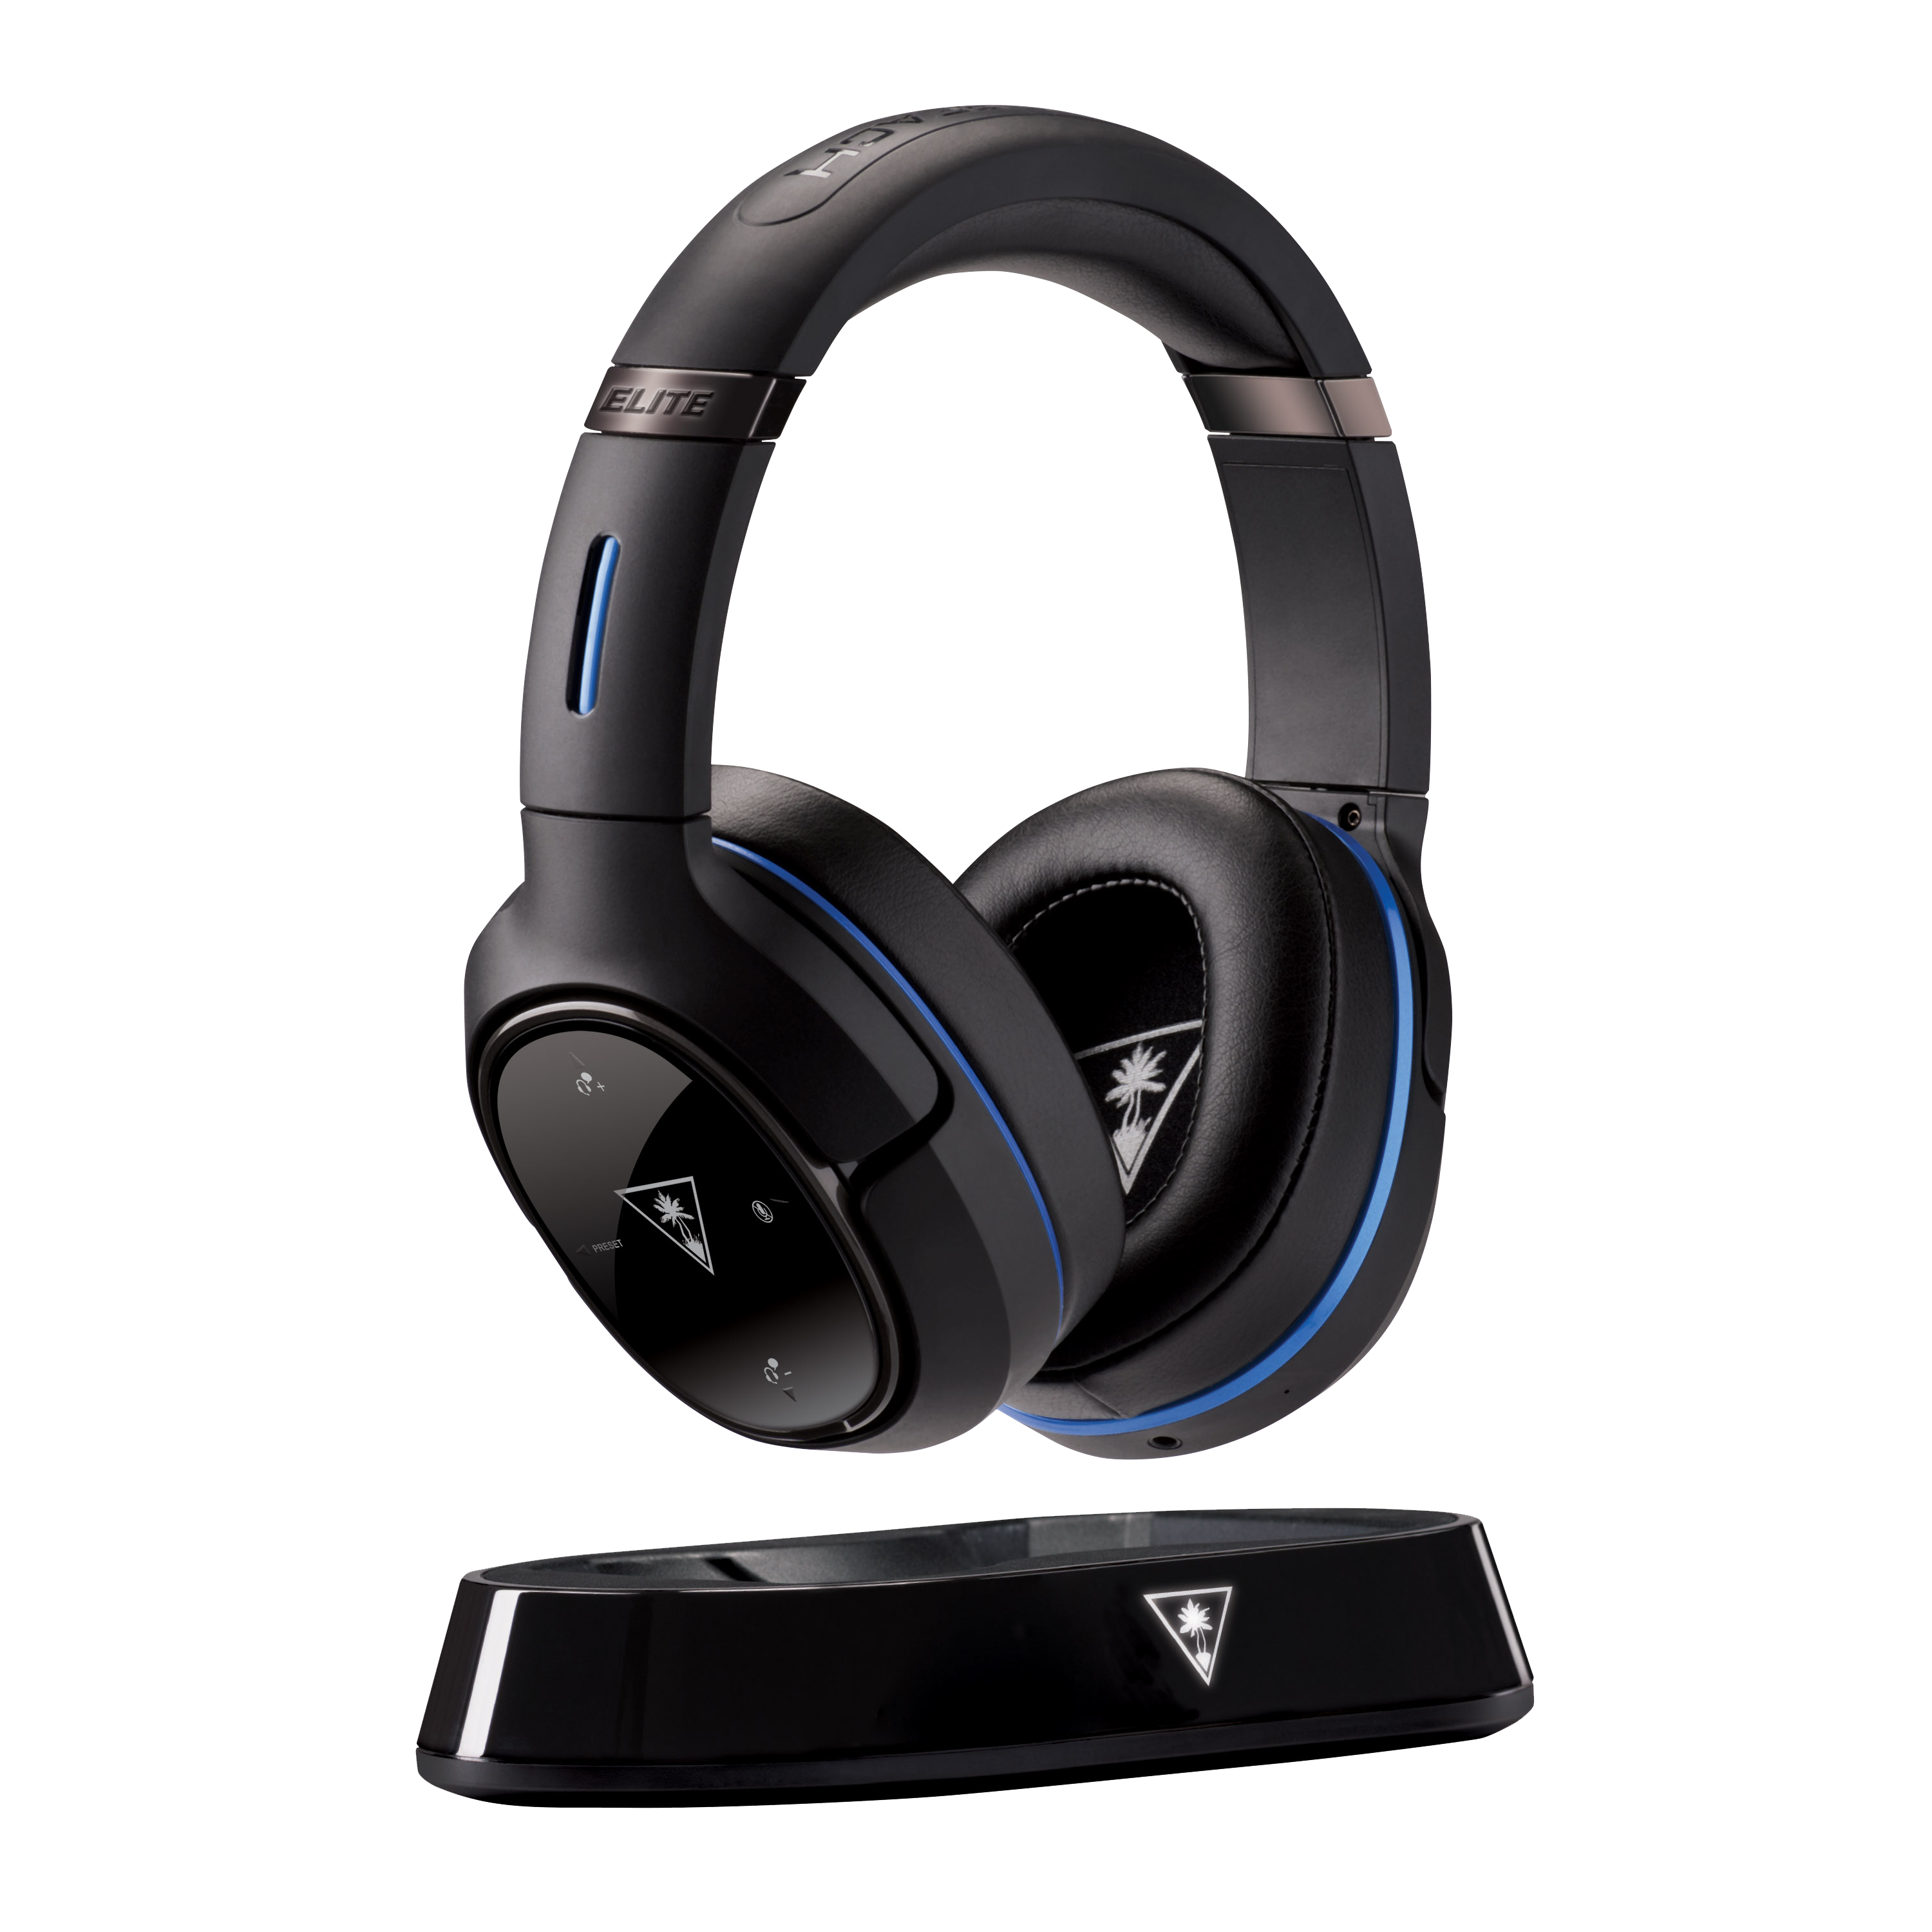 Elite 800 Playstation 4 Gaming Headset Turtle Beach